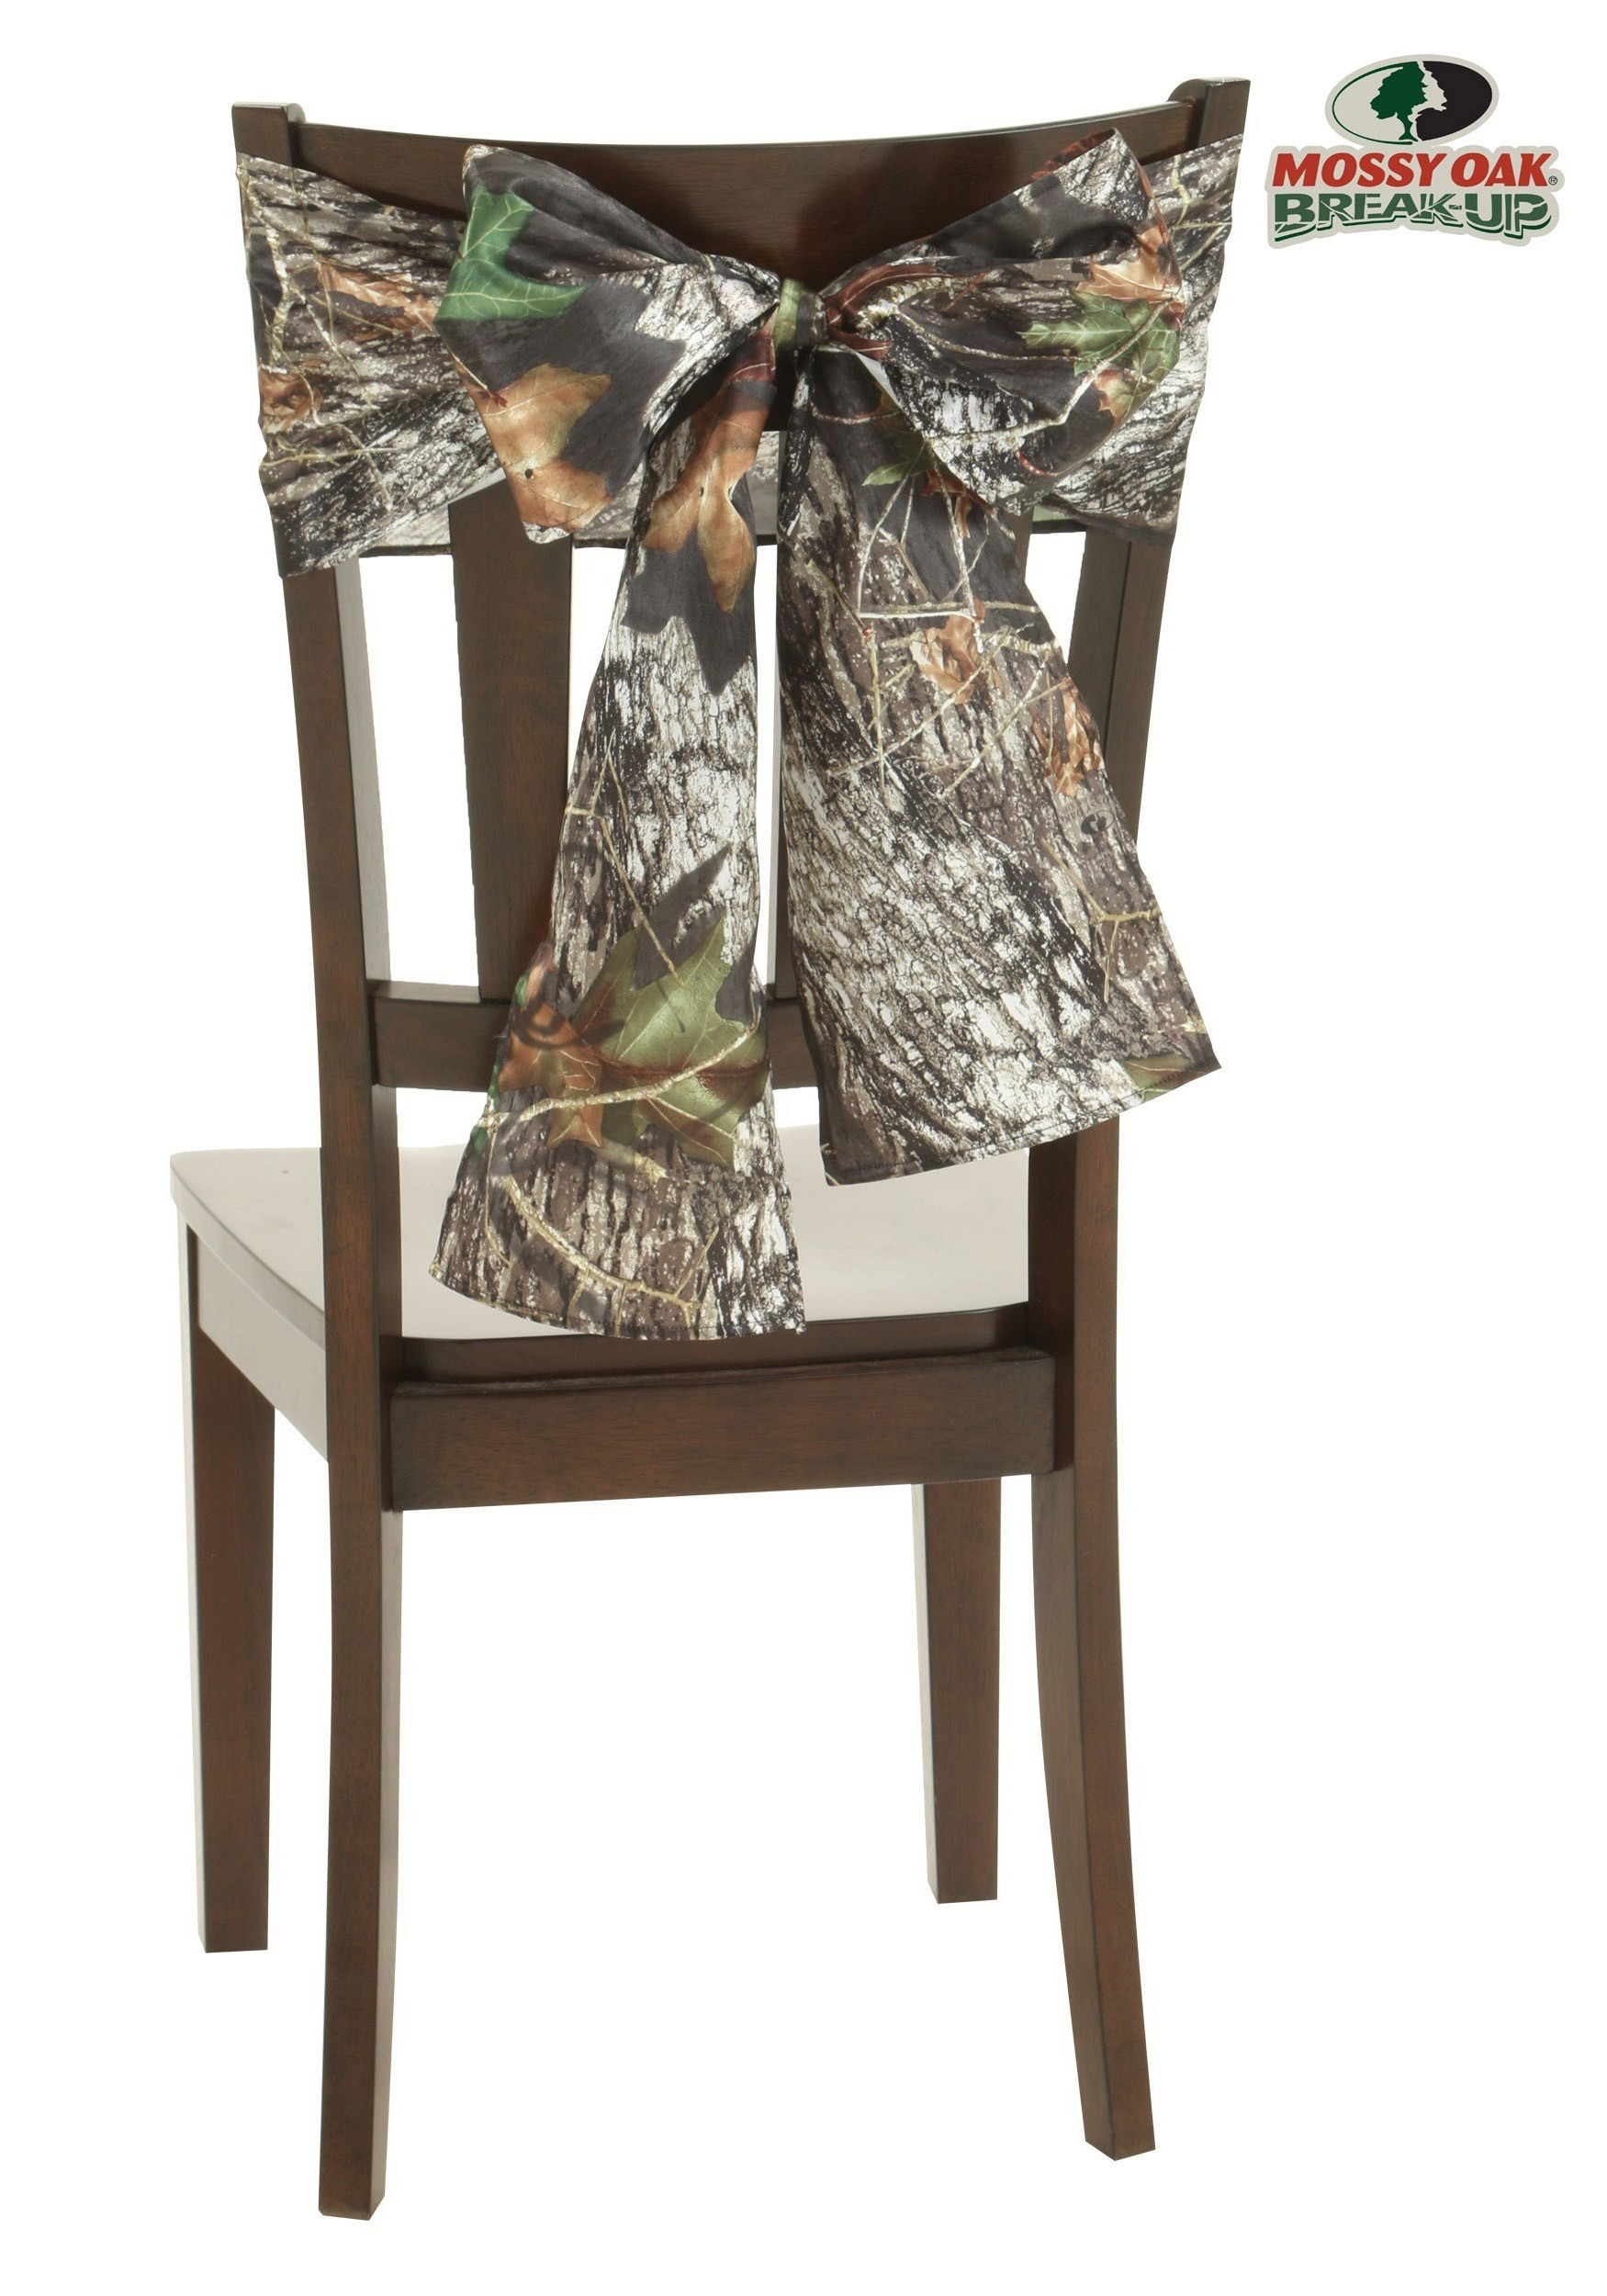 camo office chair outdoor rocking chairs canada mossy oak tie